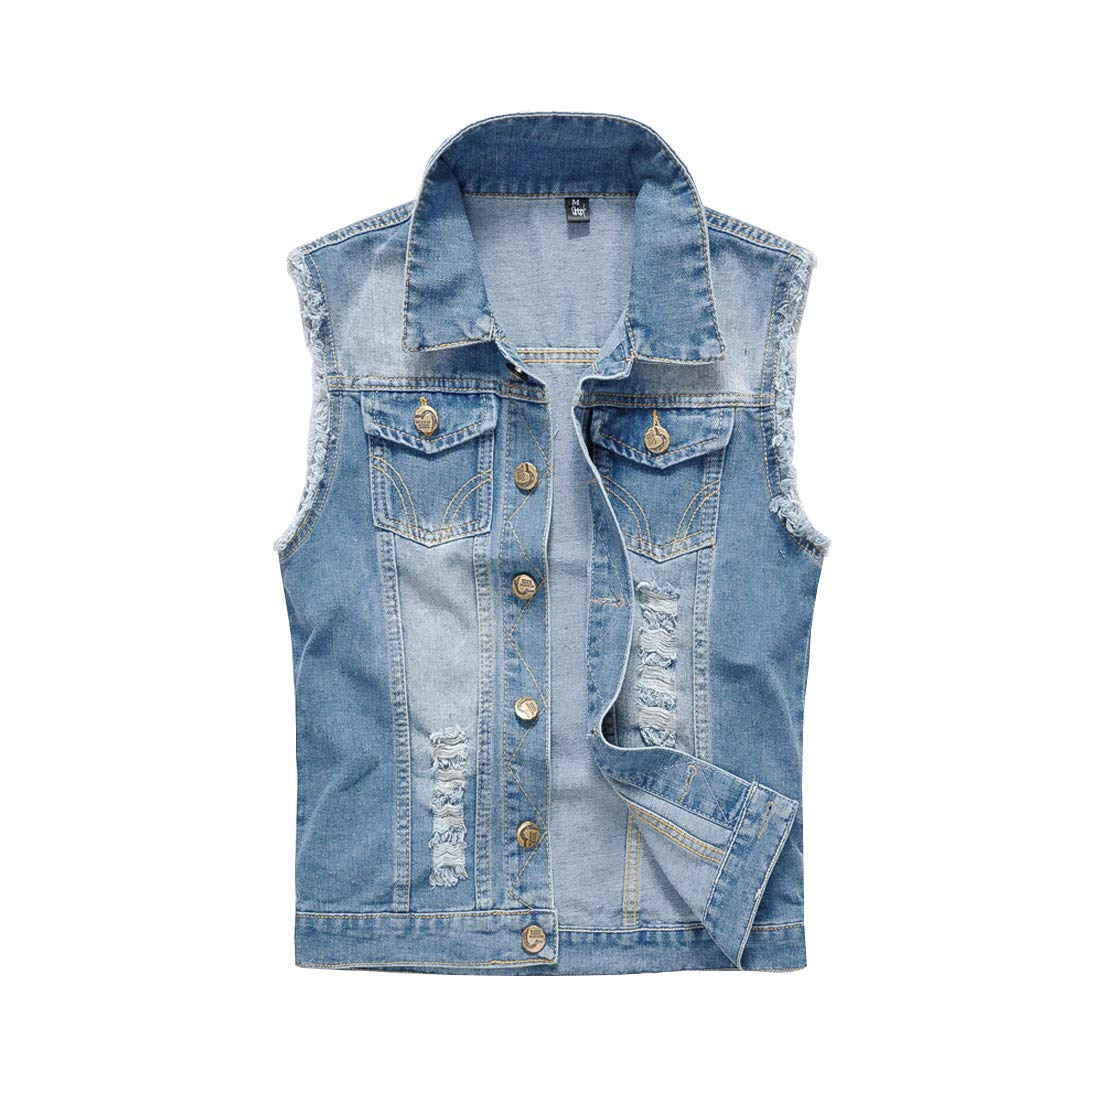 HORZEE Men's Casual Denim Vest Button-Down Trucker Jean Jacket Light Blue, Small by HORZEE